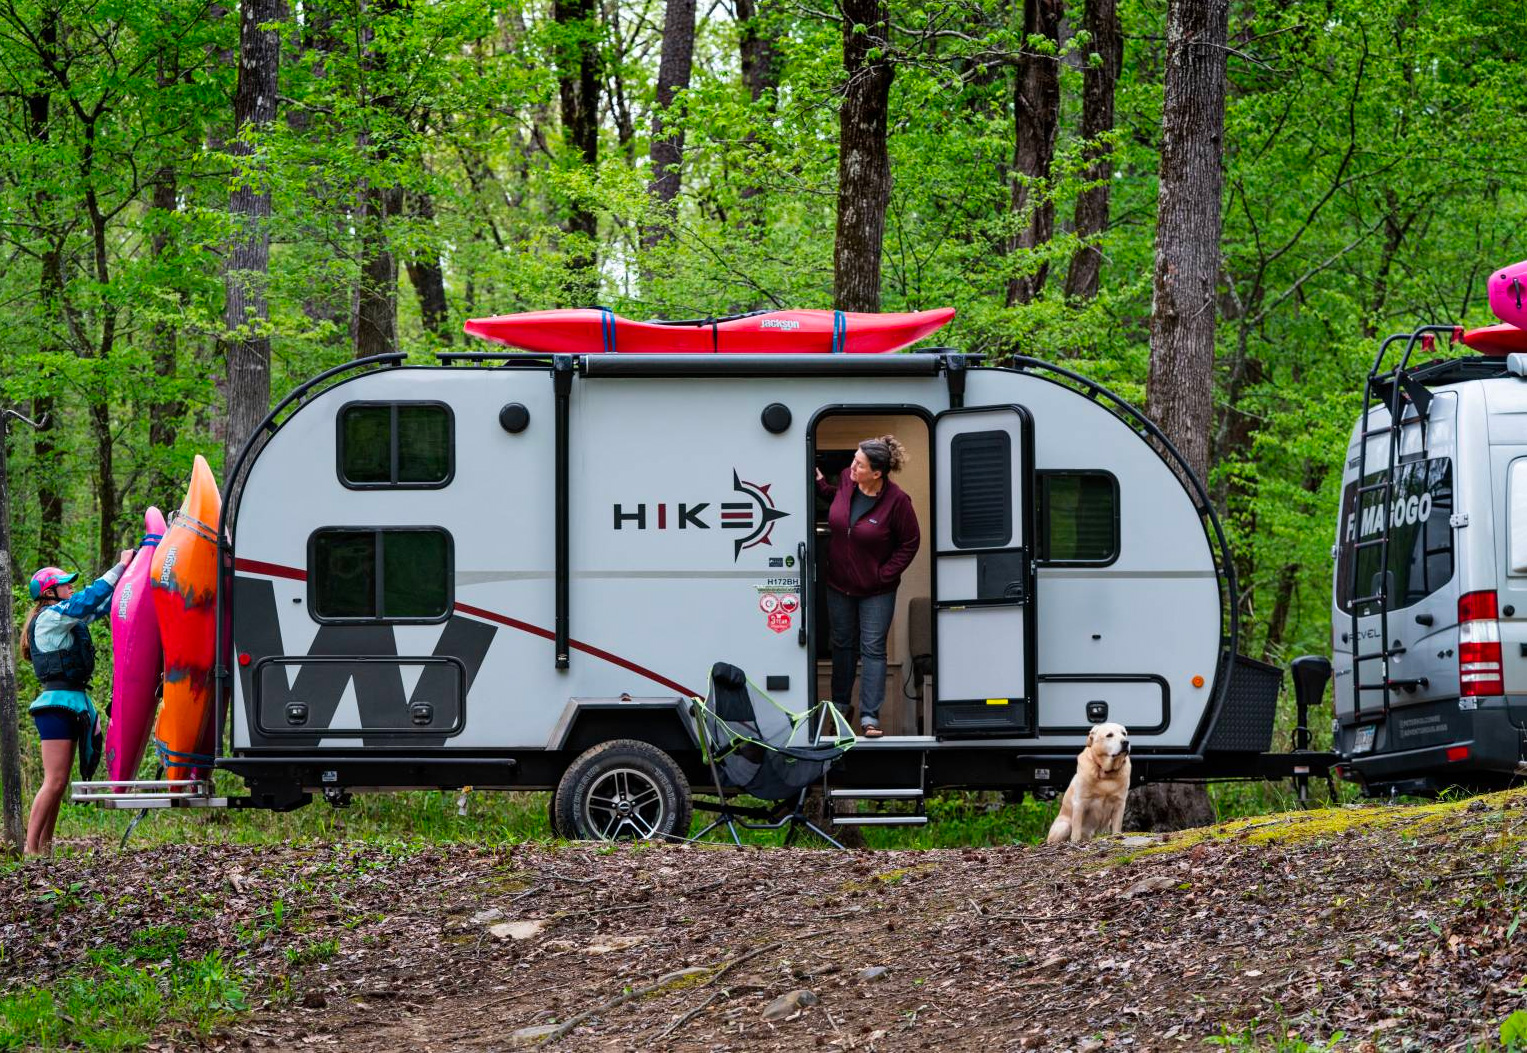 Winnebago's Hike Camper is Optimized for Active Adventure at werd.com